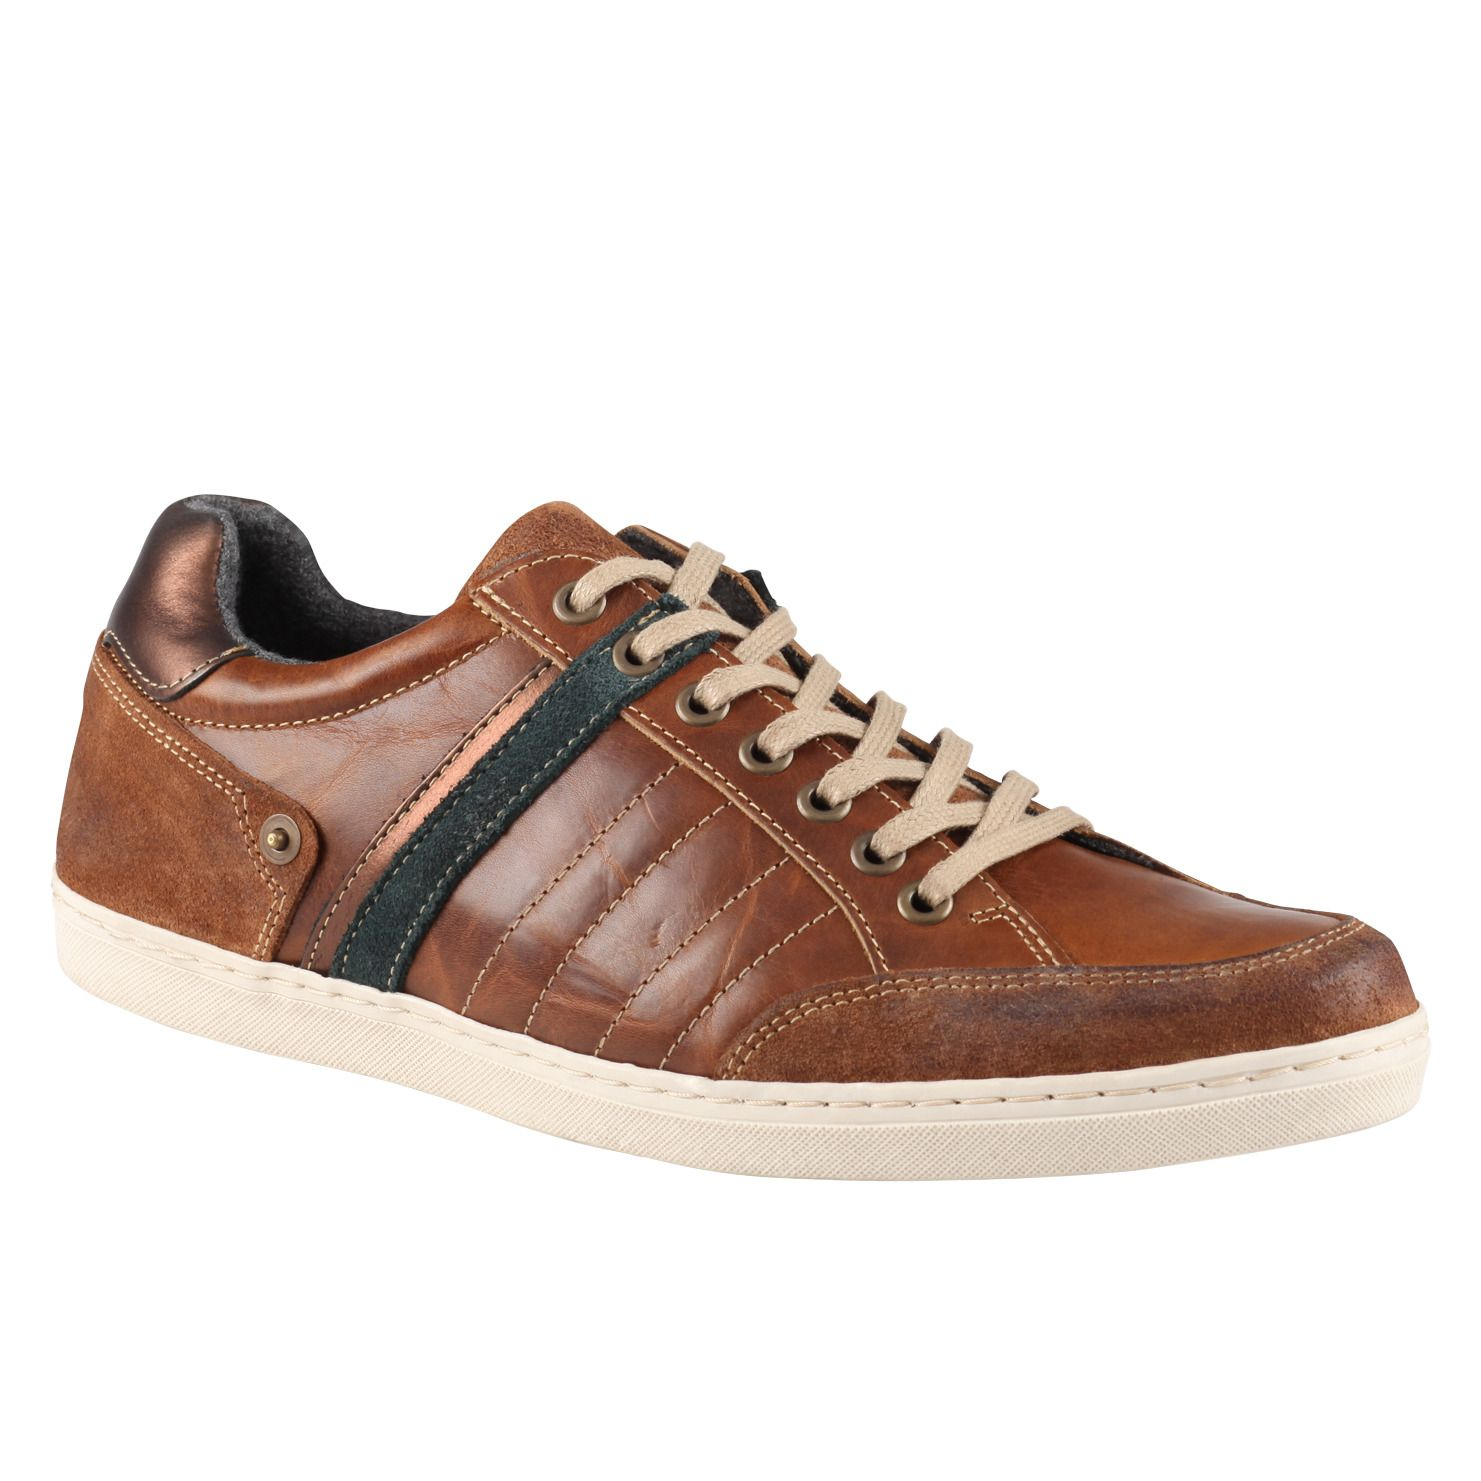 5ef519eb14d BOUMAN - sale s sale shoes men for sale at ALDO Shoes.